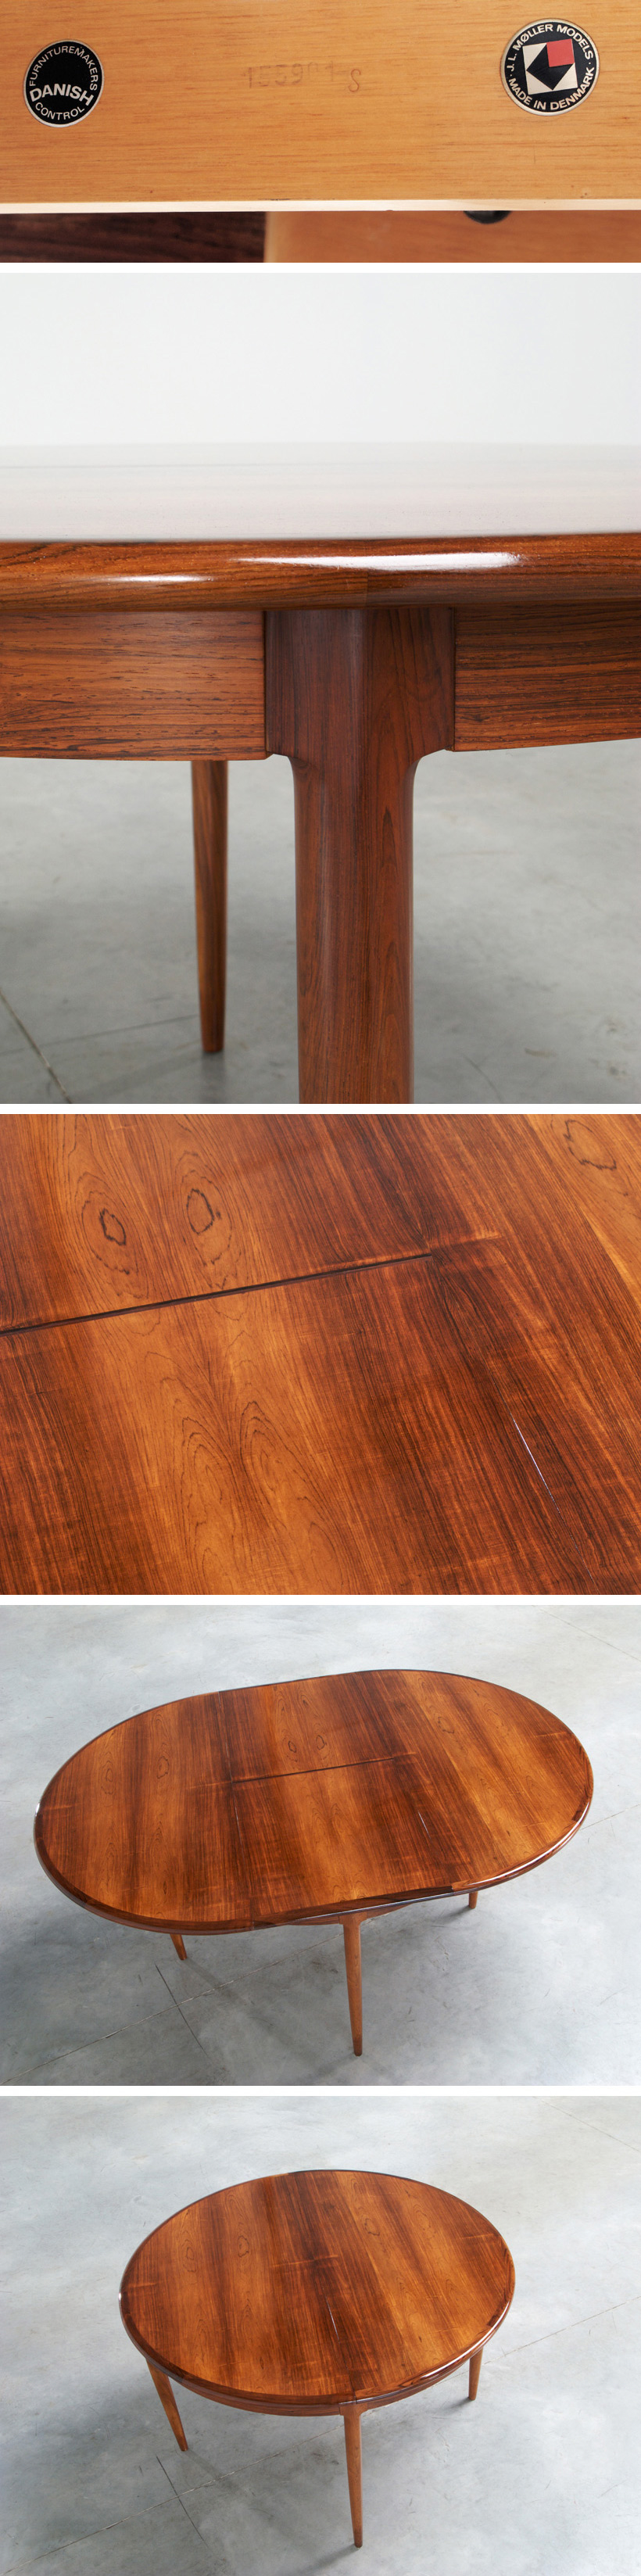 Niels Moller Brazilian Rosewood dining table Large